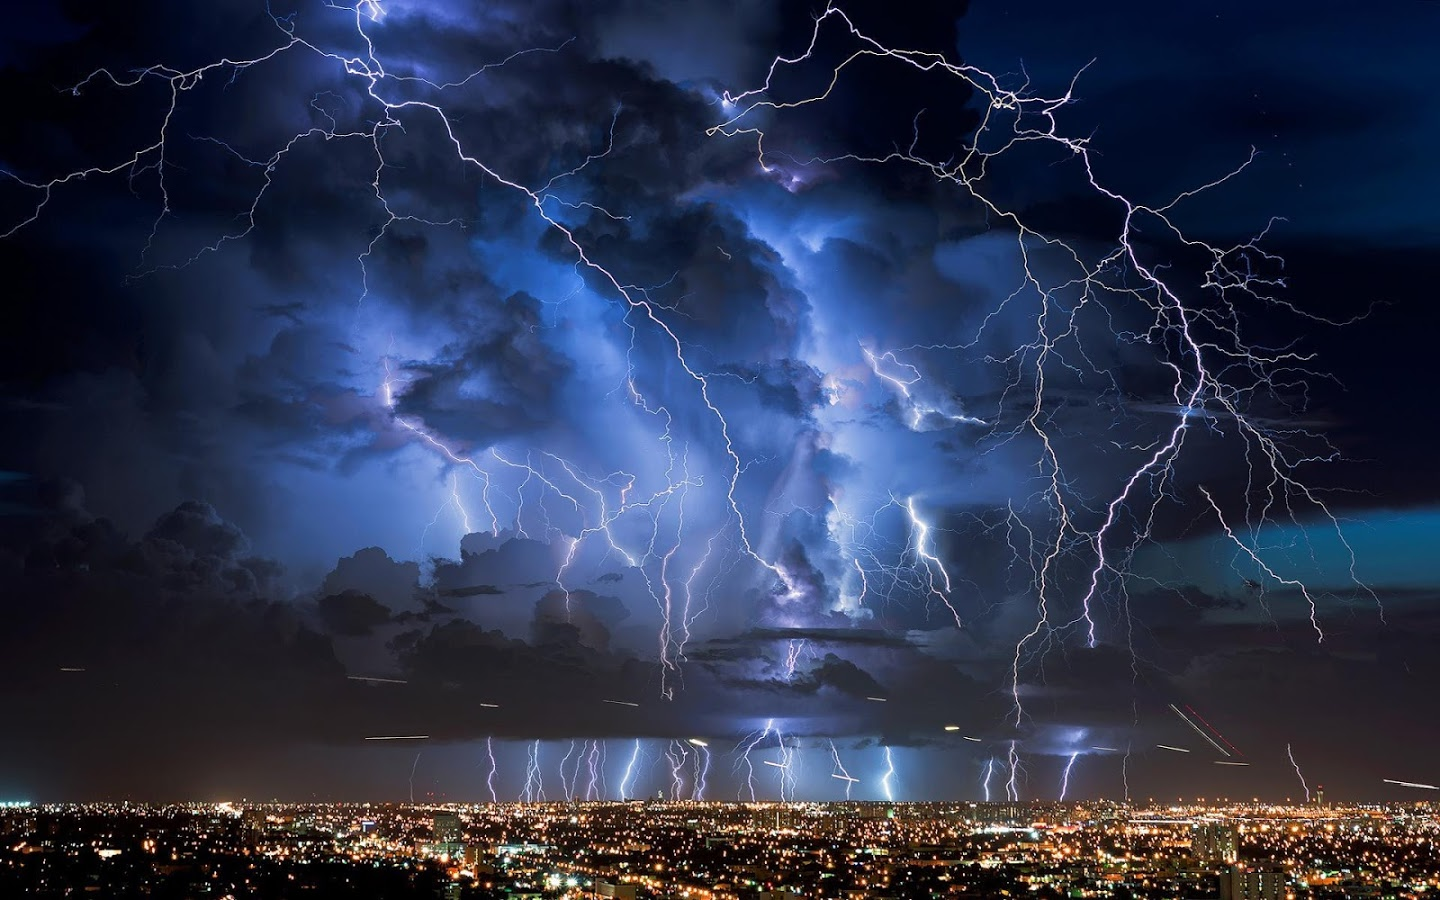 Storm Wallpaper HD - Android Apps on Google Play